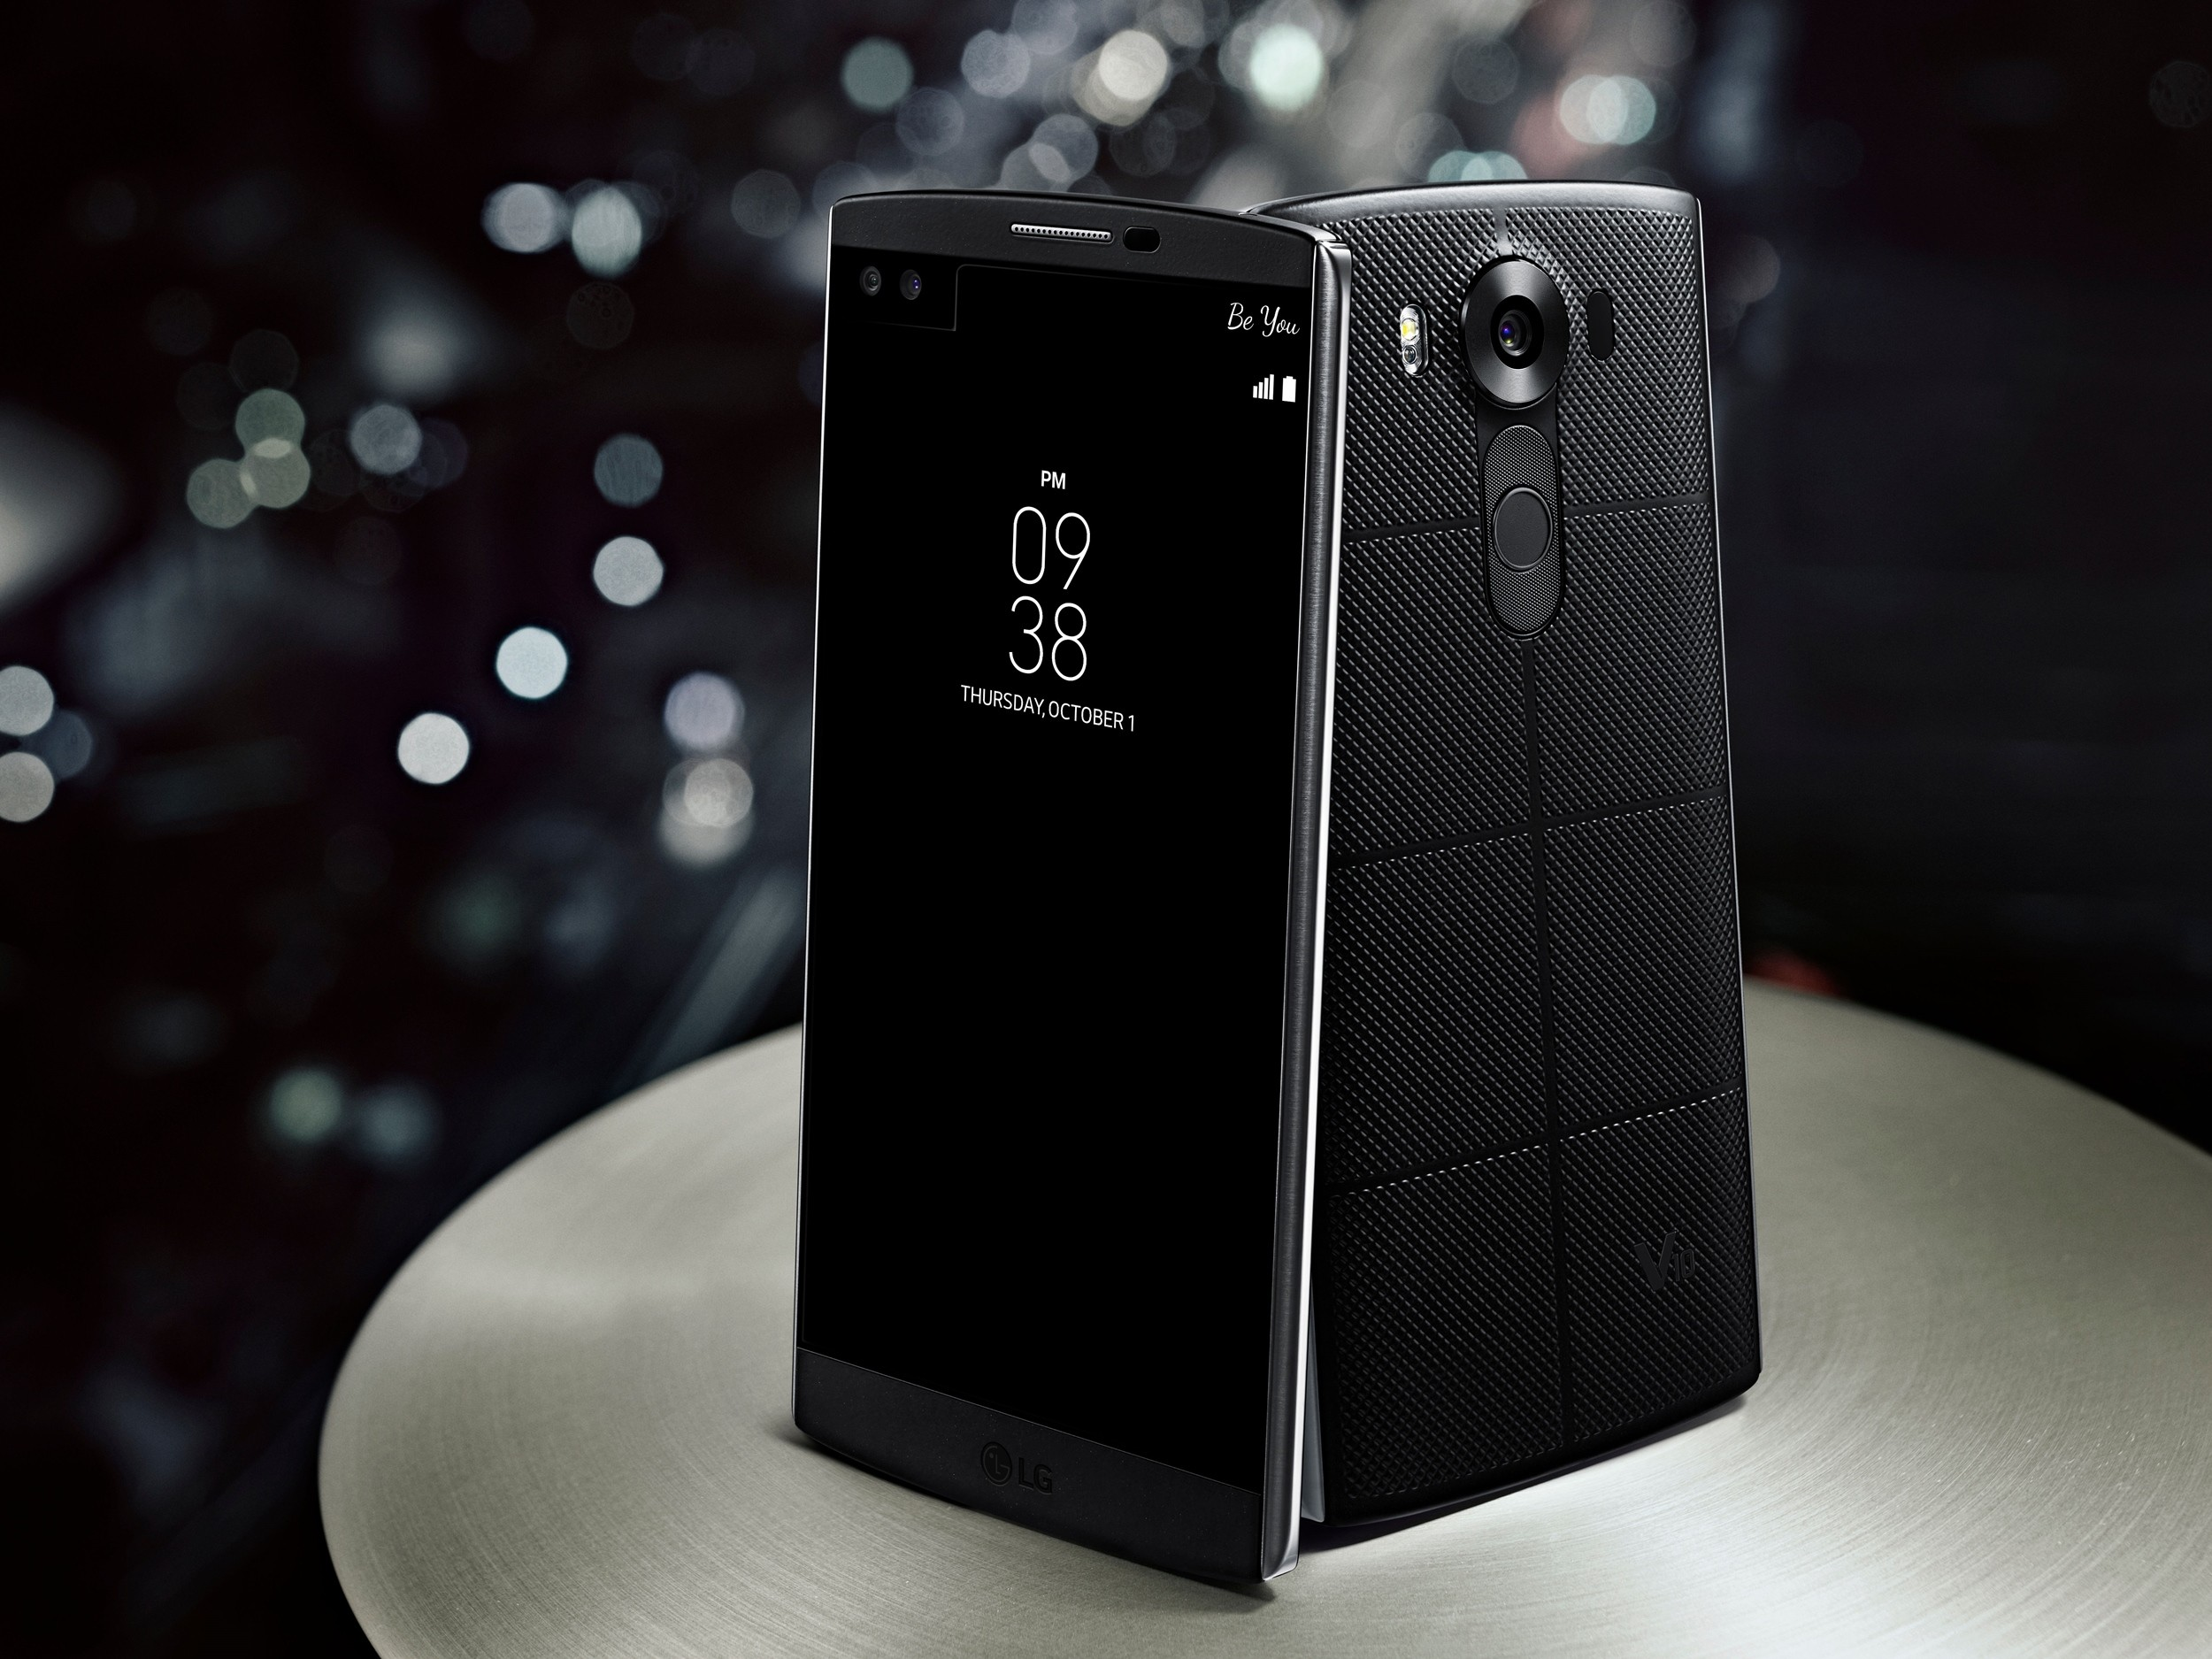 Two LG V10s in Space Black standing on a table, showing the front and back view of the device